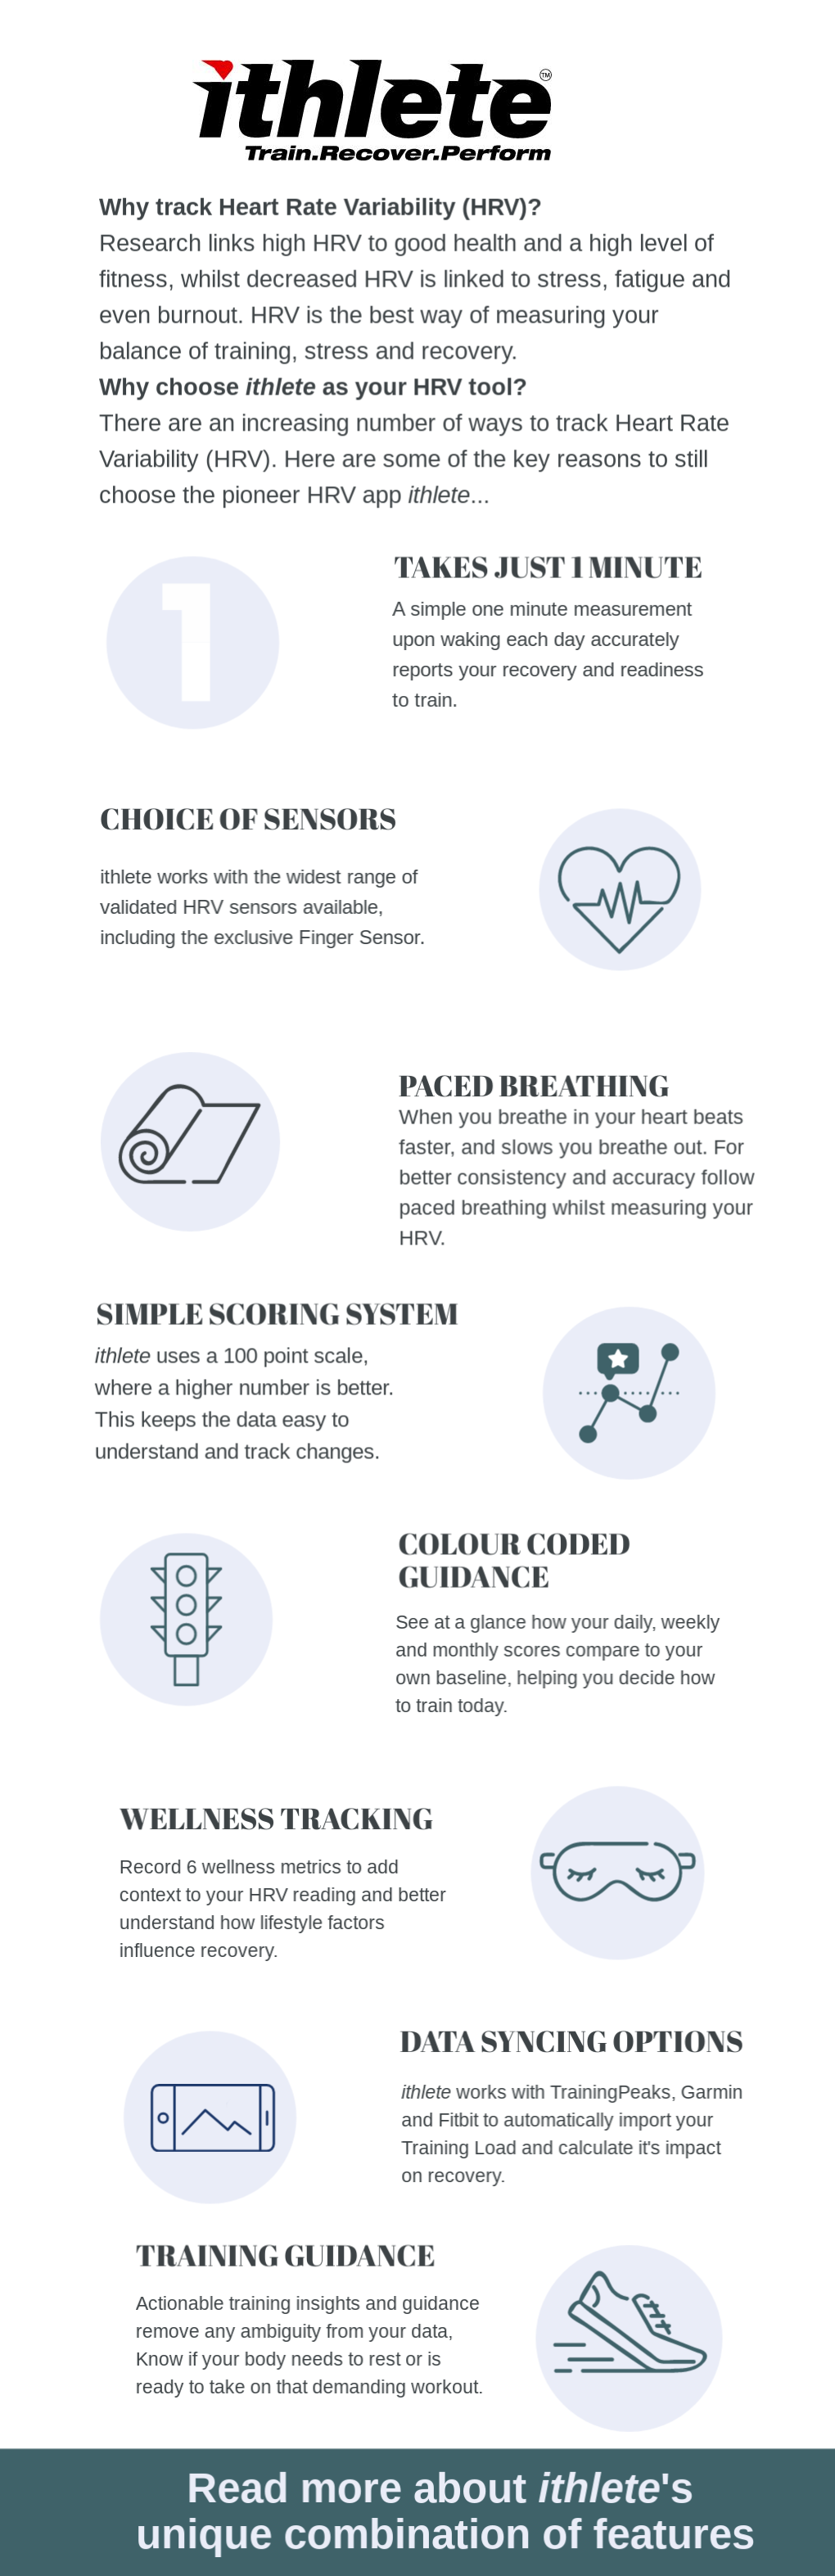 Why ithlete infographic